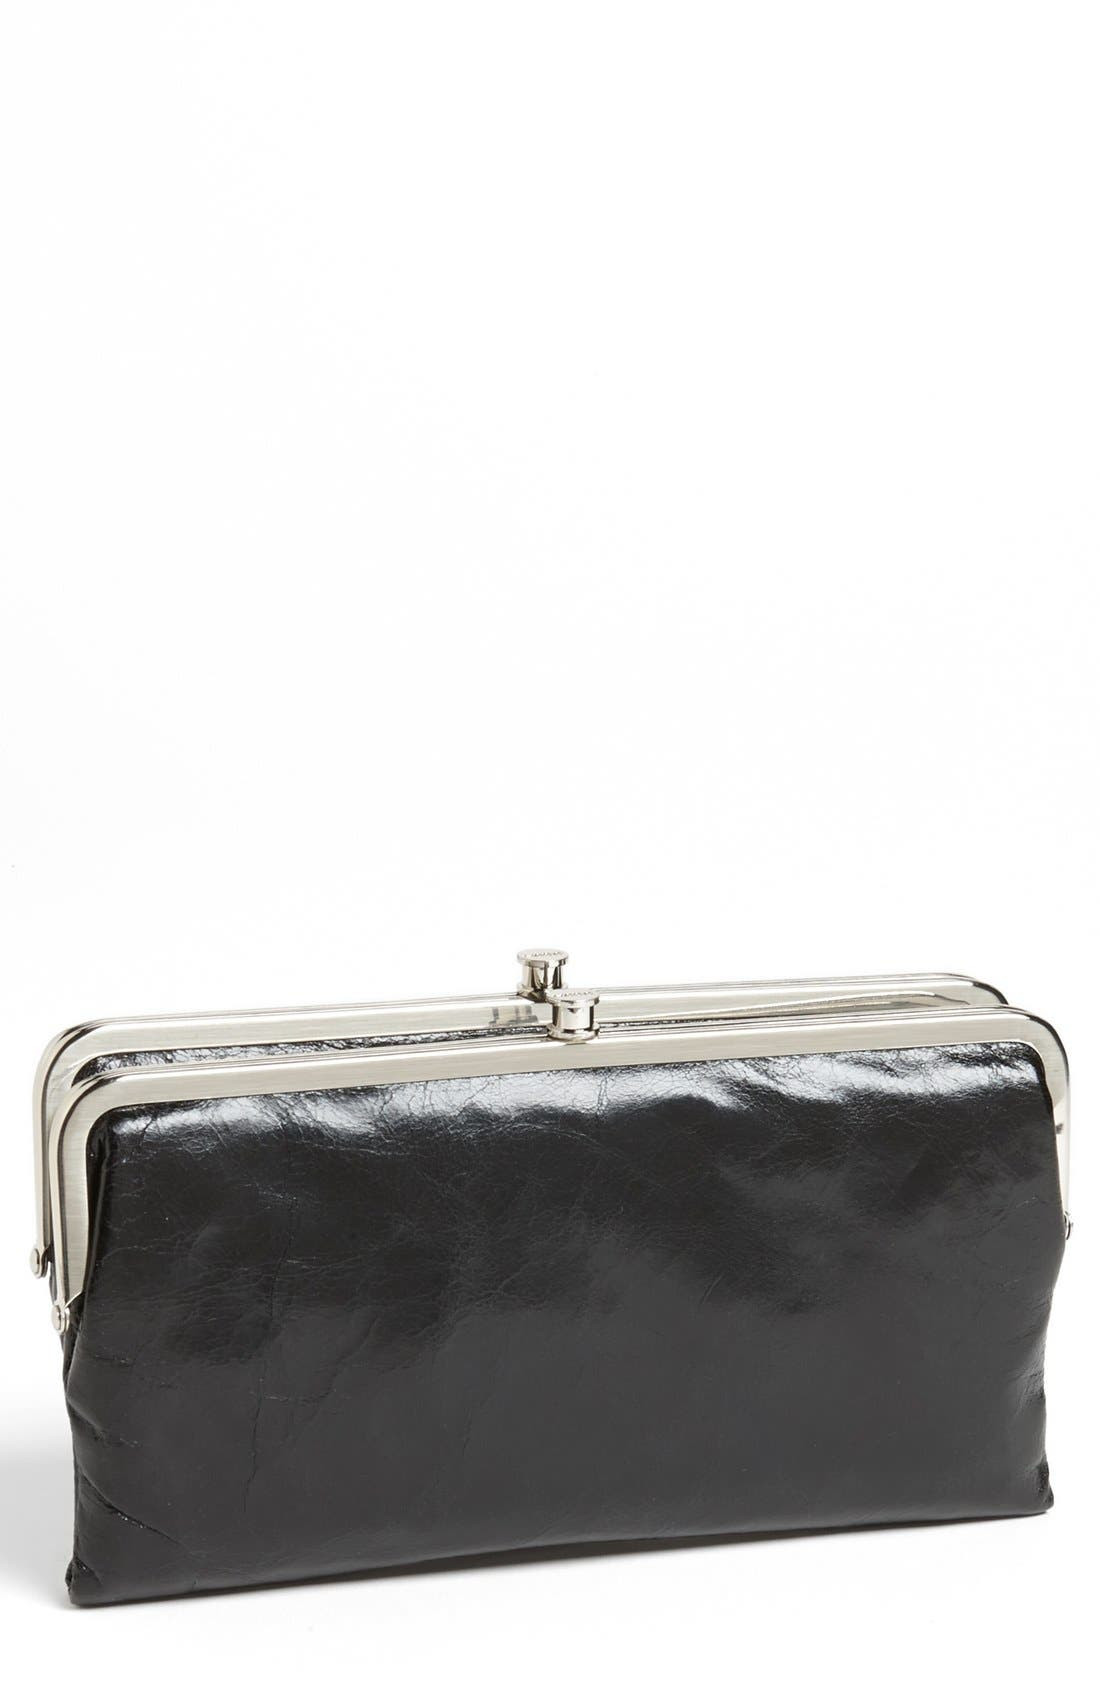 Alternate Image 1 Selected - Hobo 'Lauren' Leather Double Frame Clutch